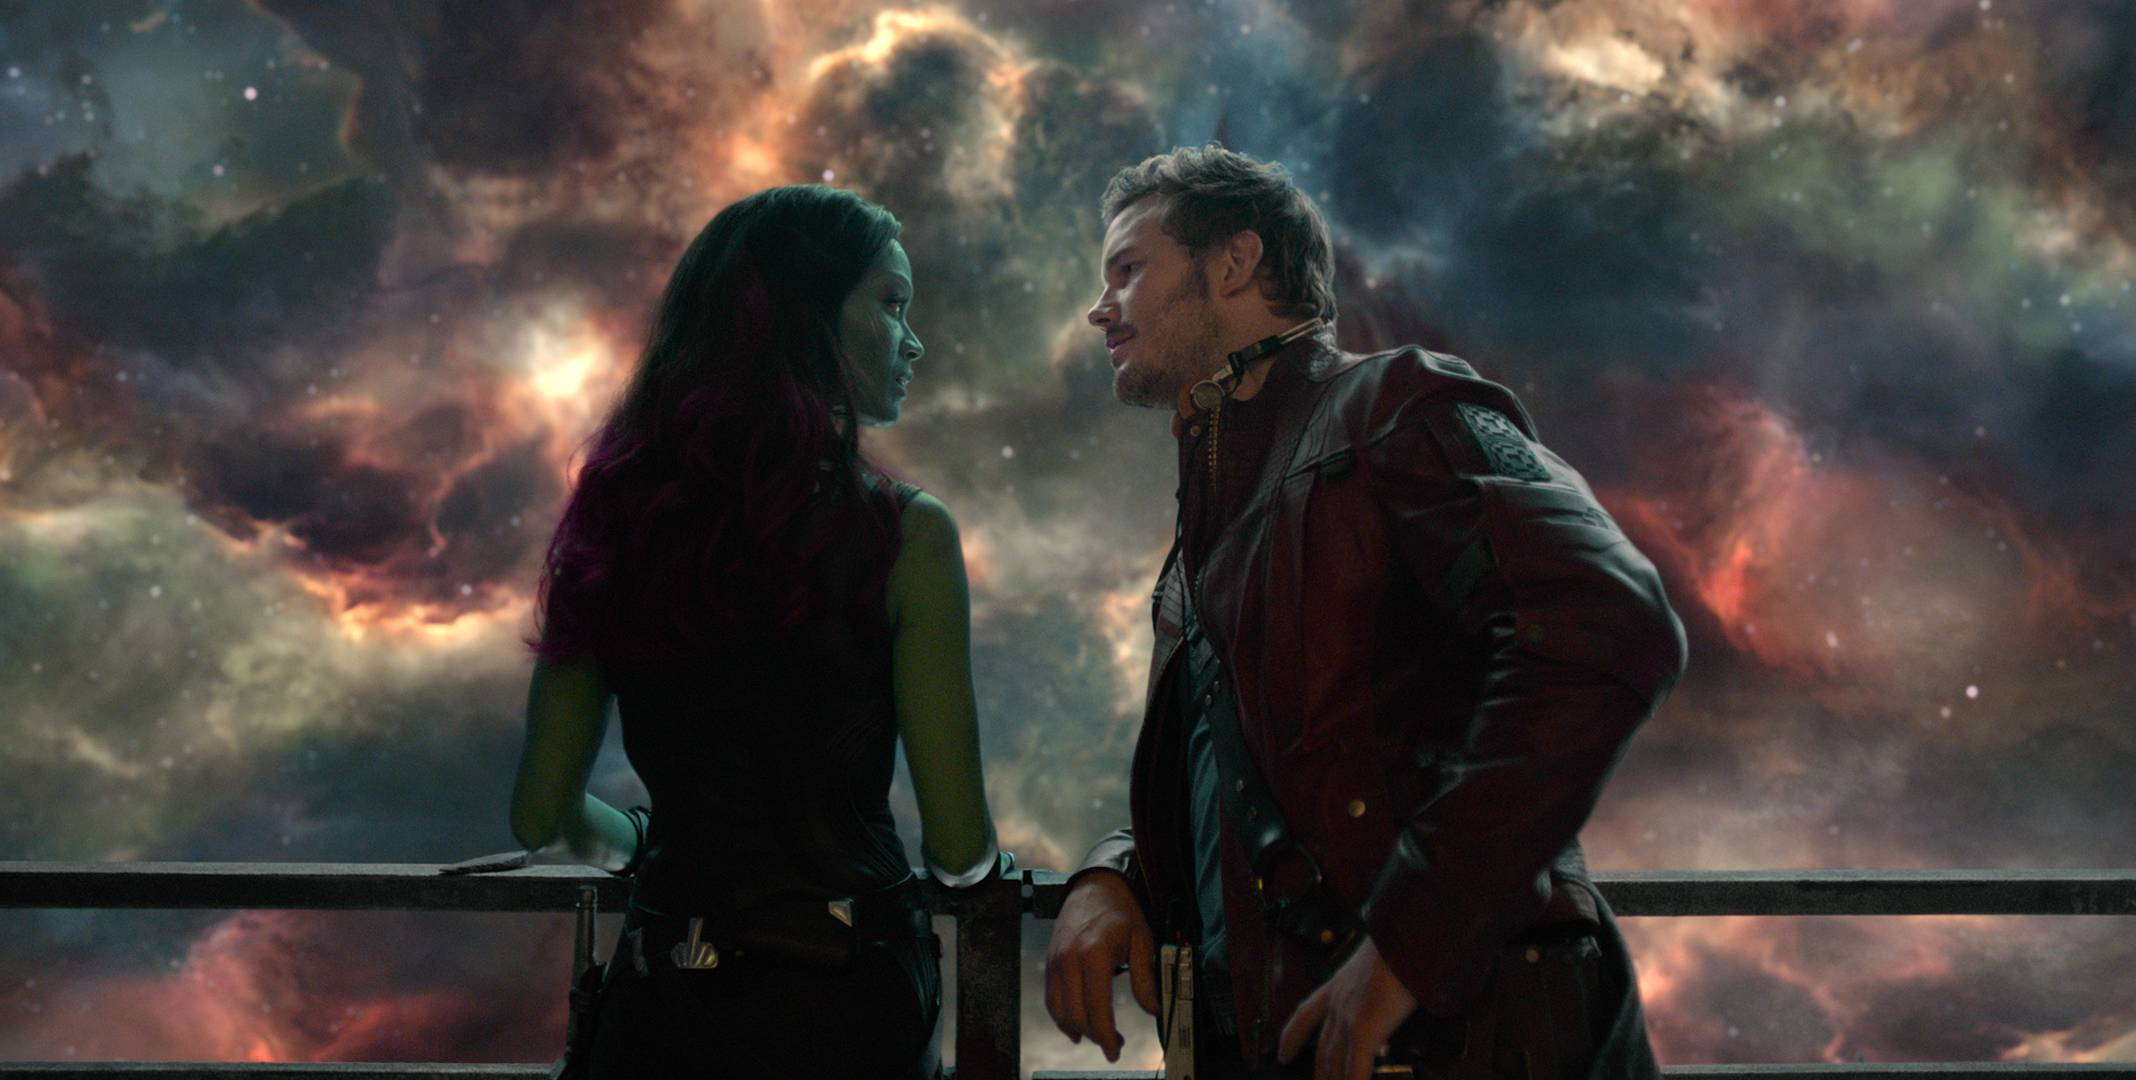 Star Lord's Star-gaze Romance with Gamora